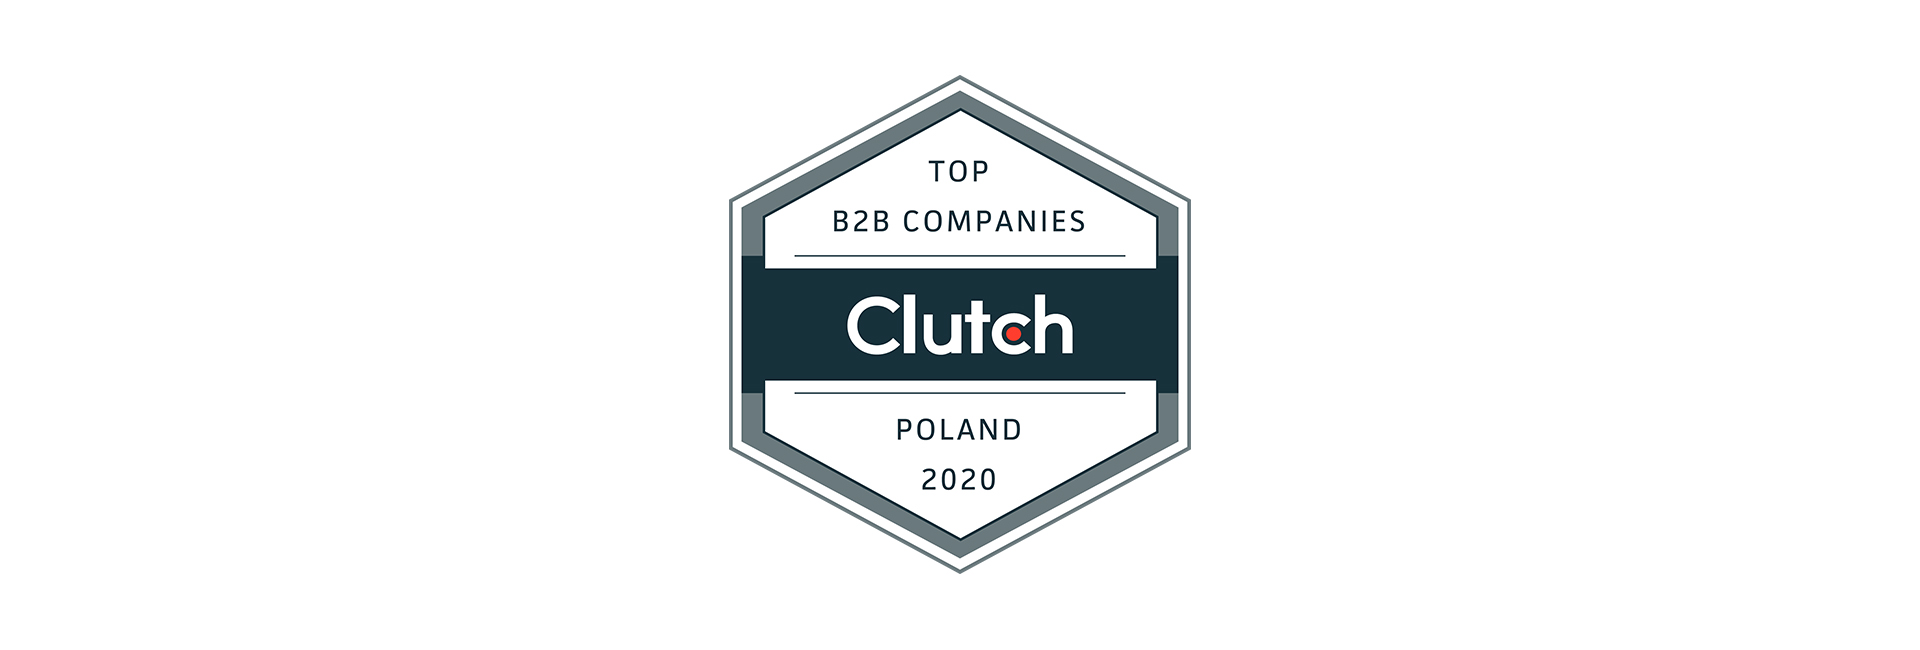 PG Brand Reforming Company <br /> by Clutch for 2020 image